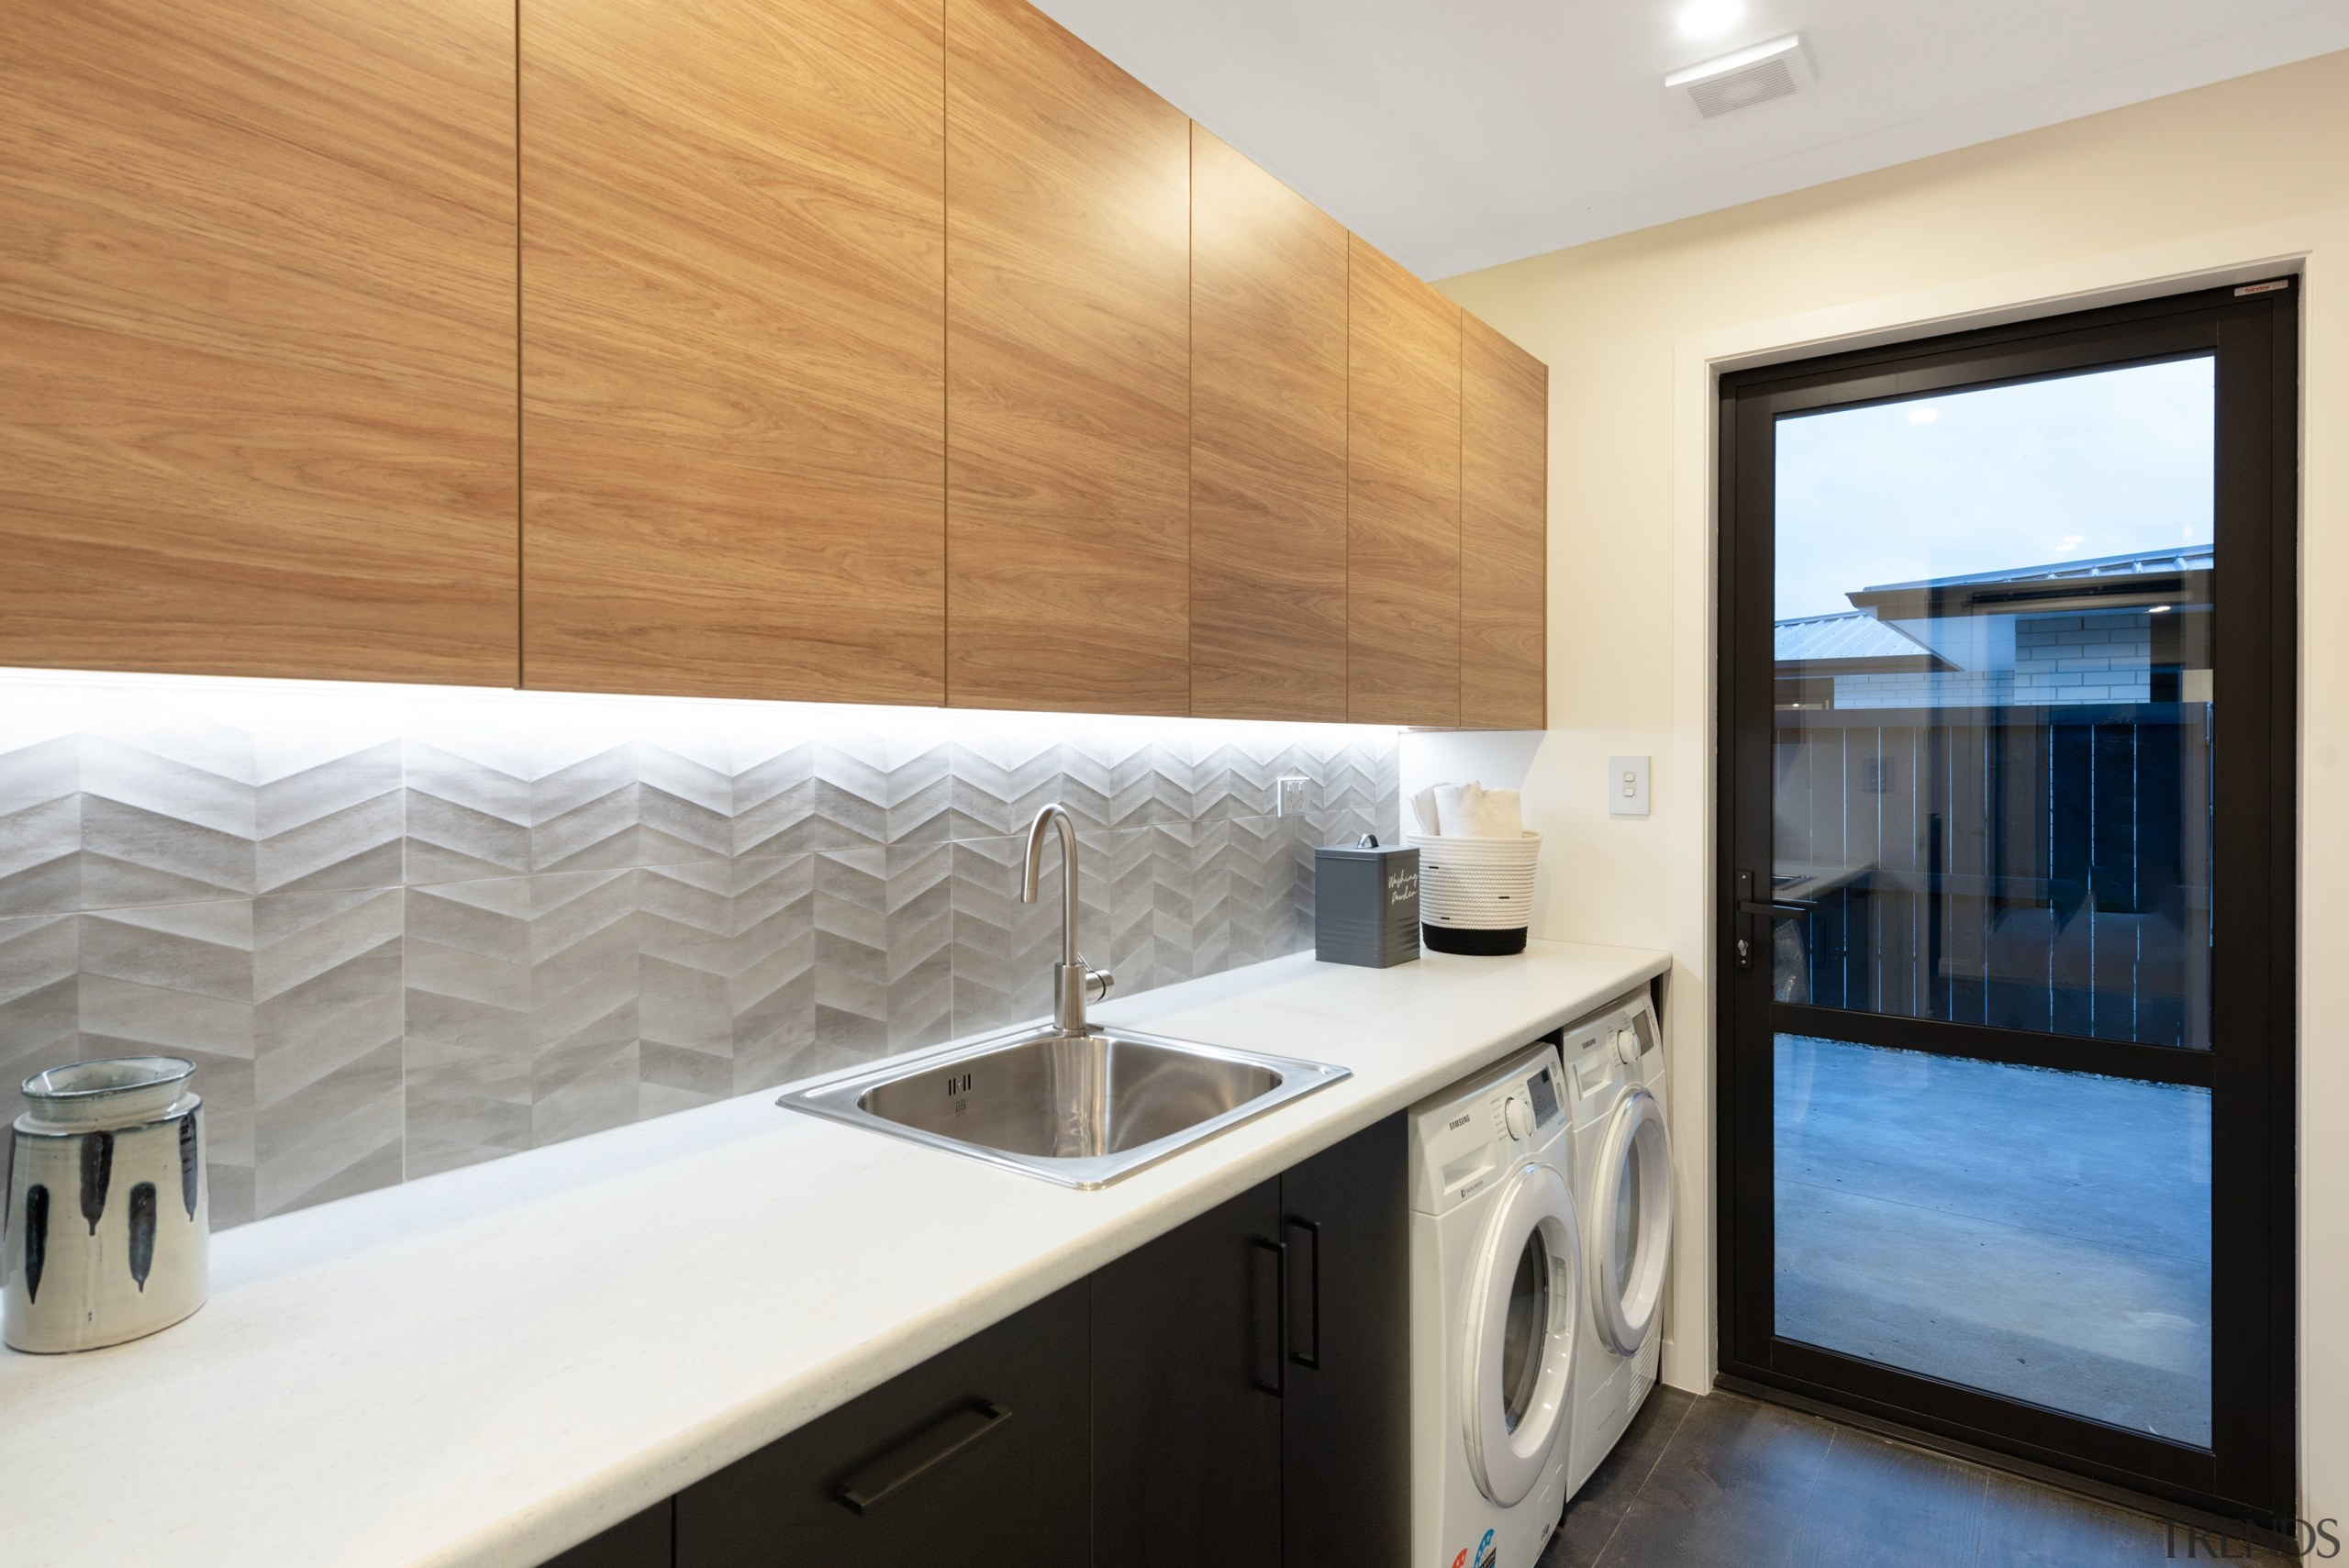 Underlit wood cabinetry also shows off the textural